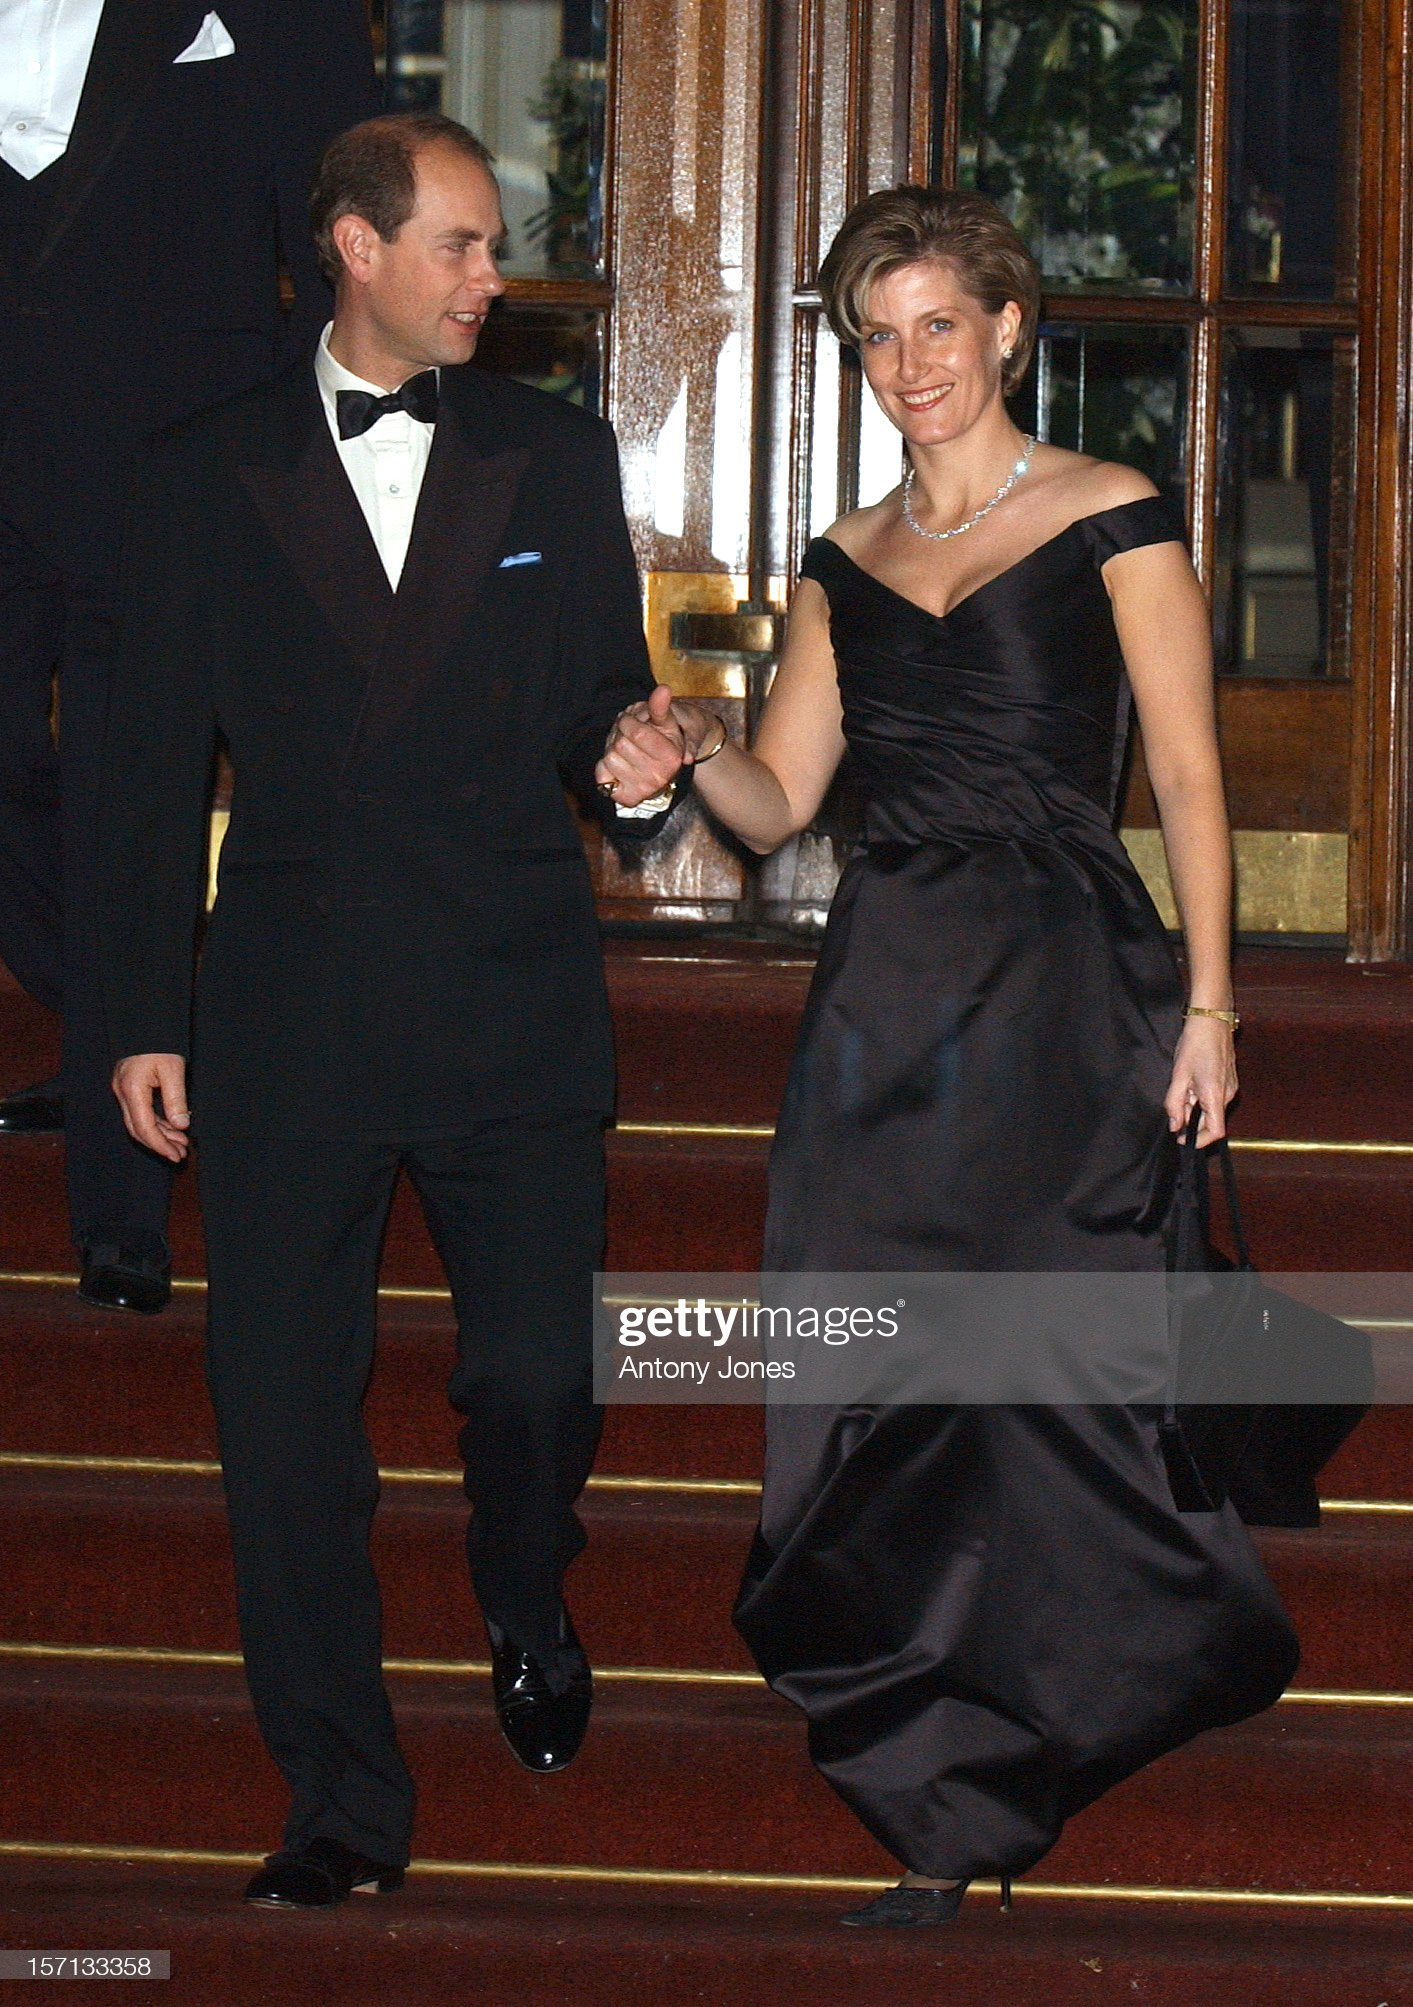 Arty At The Ritz Hosted By The Queen To Celebrate Her Jubilee Year : News Photo